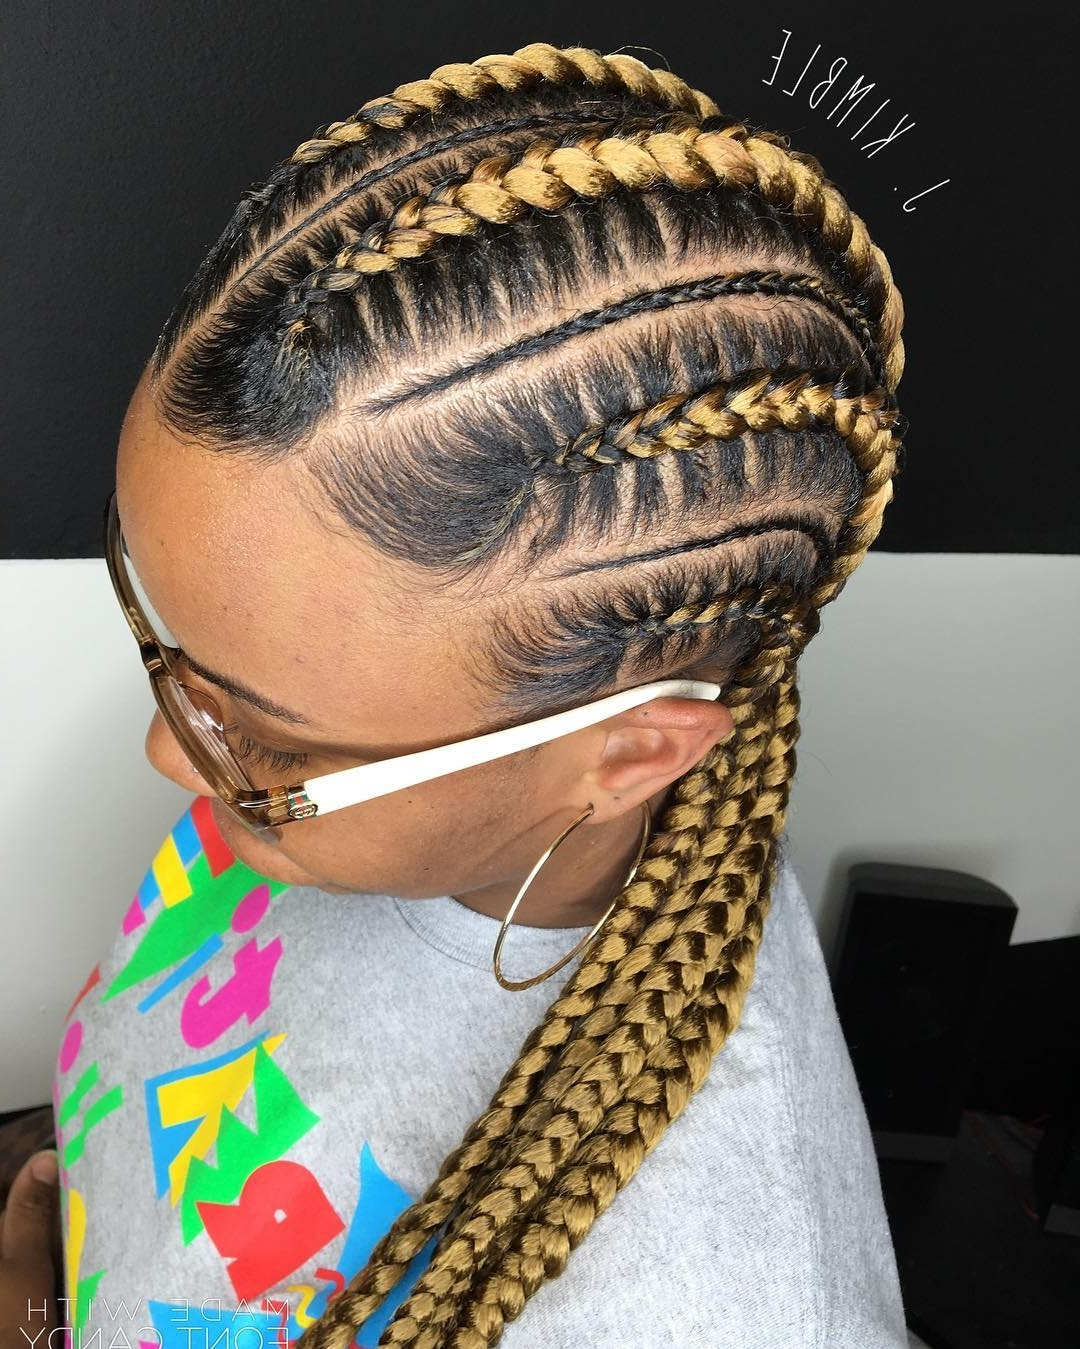 Fashionable Braided Hairstyles For Dark Hair In 70 Best Black Braided Hairstyles That Turn Heads In (View 6 of 15)